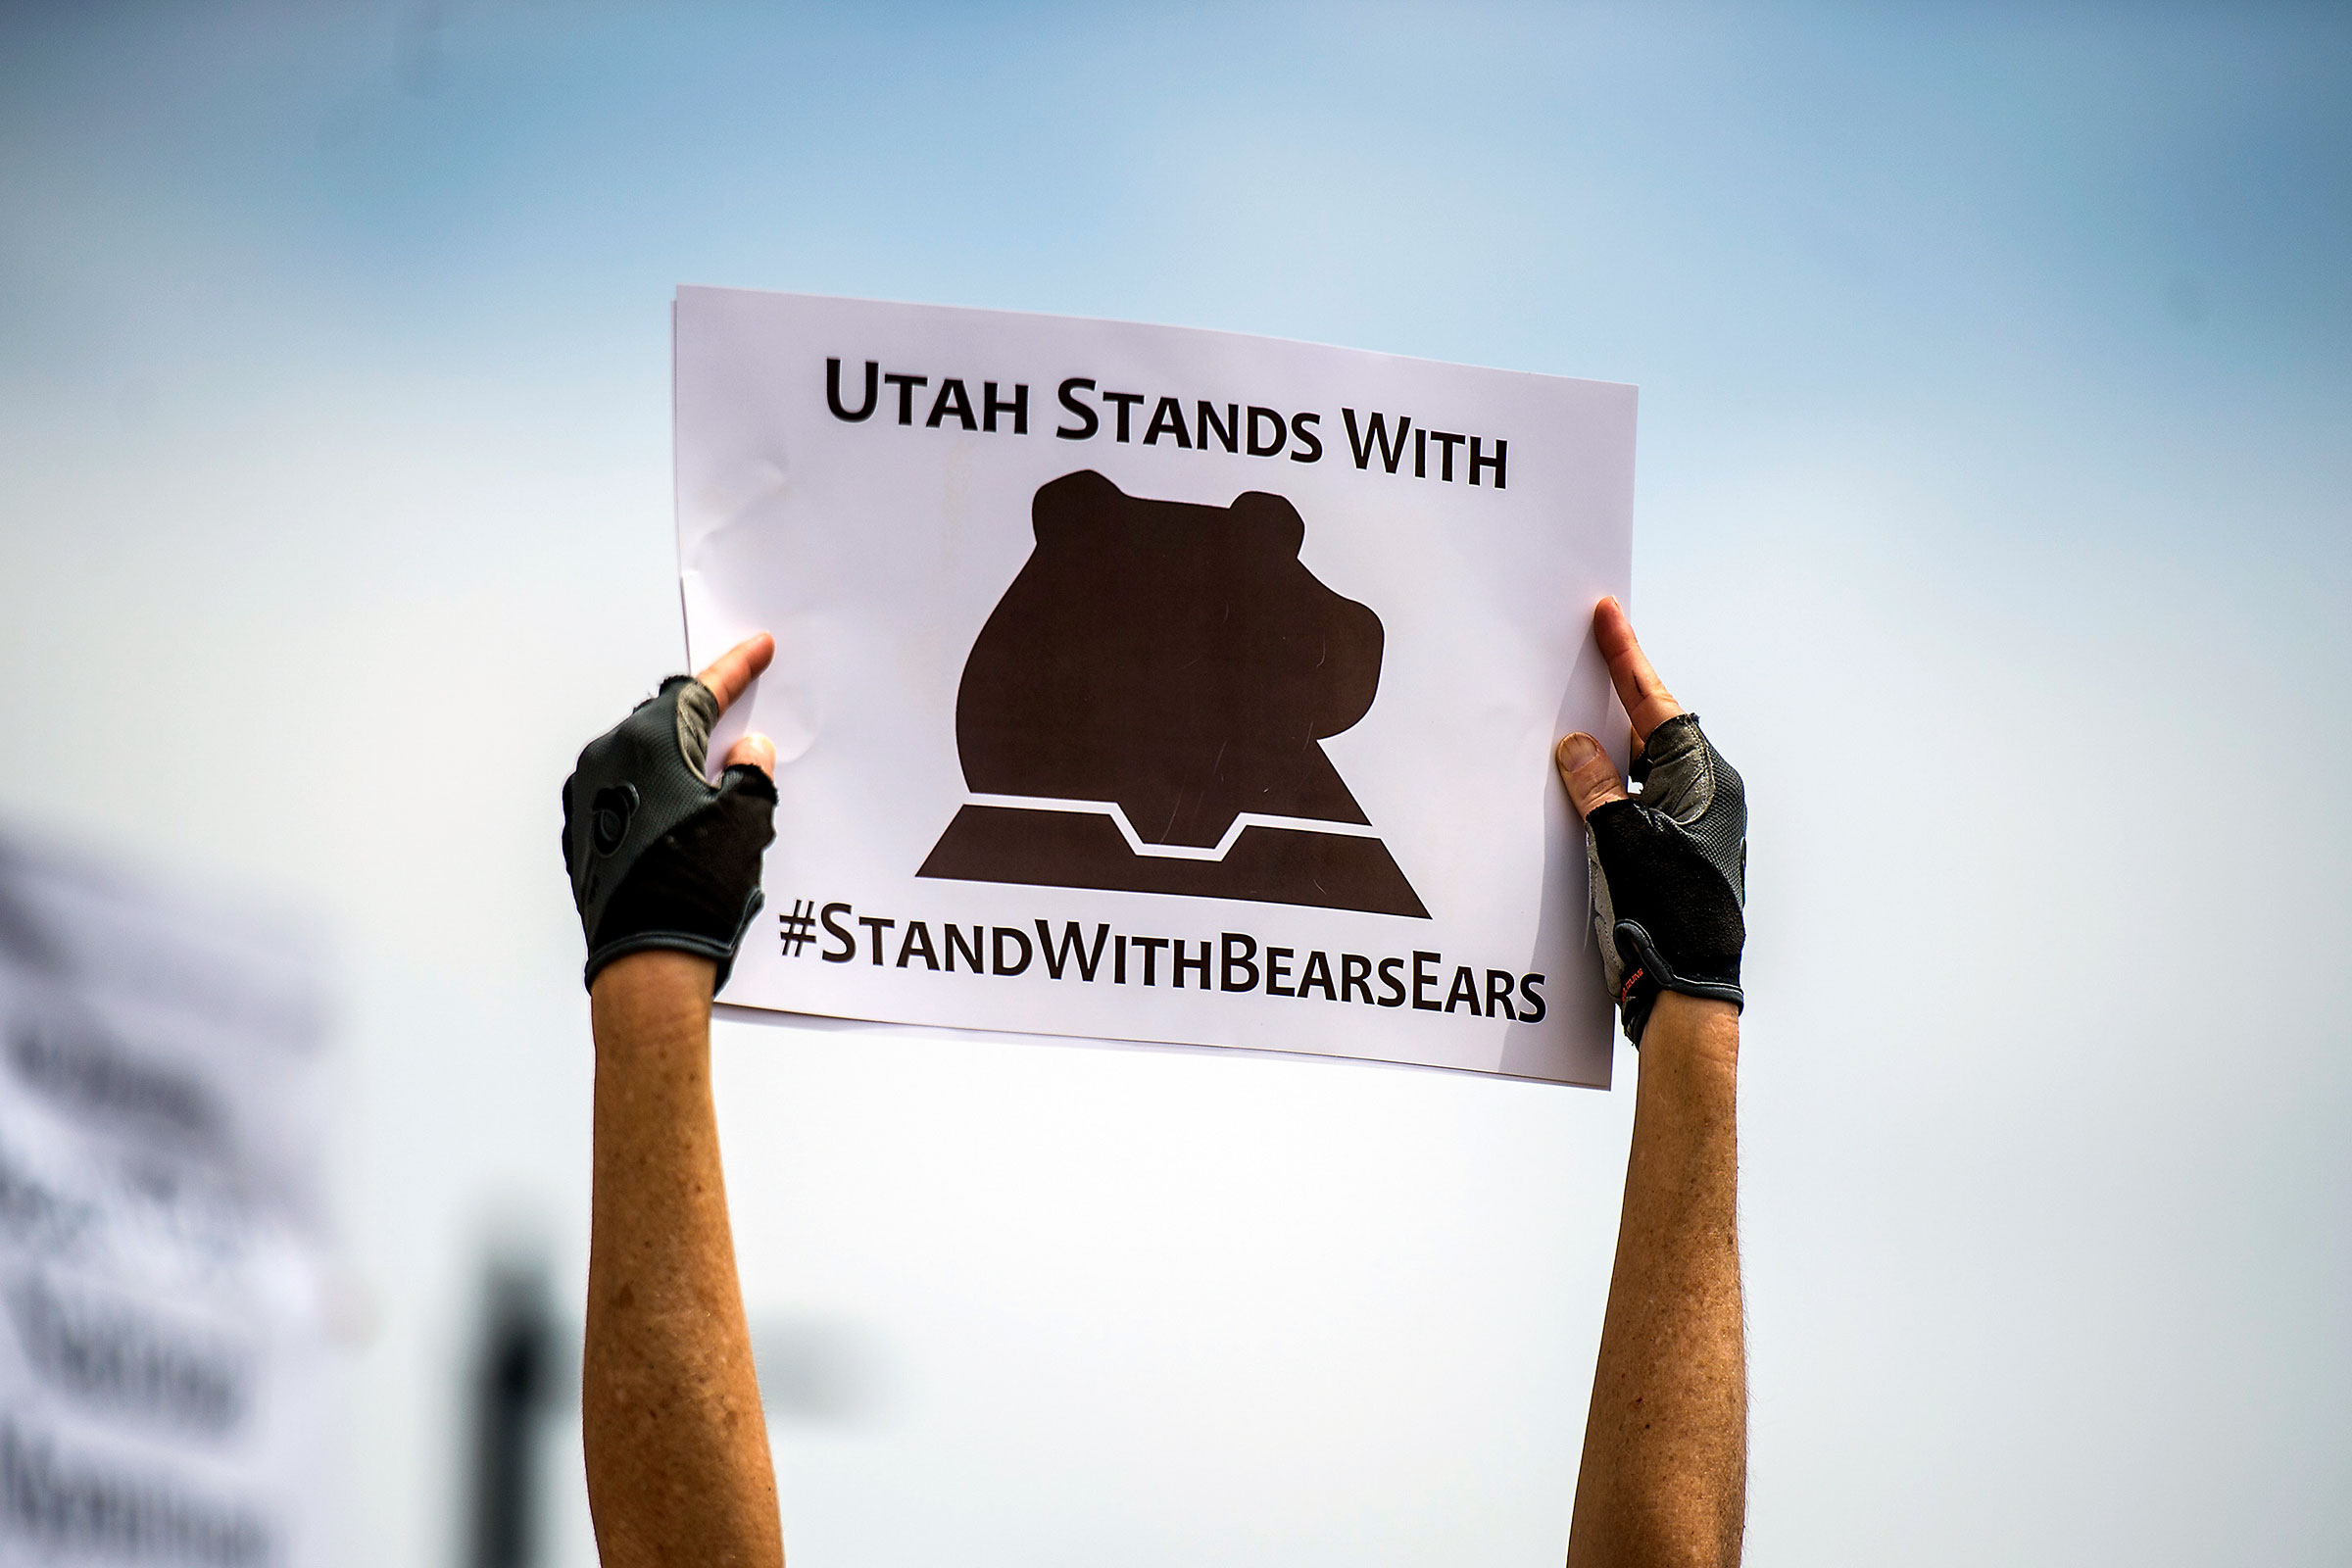 Hundreds of people gathered during the Monumental Rally for Bears Ears and Grand Staircase Monuments at the Utah State Capitol in May 2017. Chris Detrick/The Salt Lake Tribune/AP